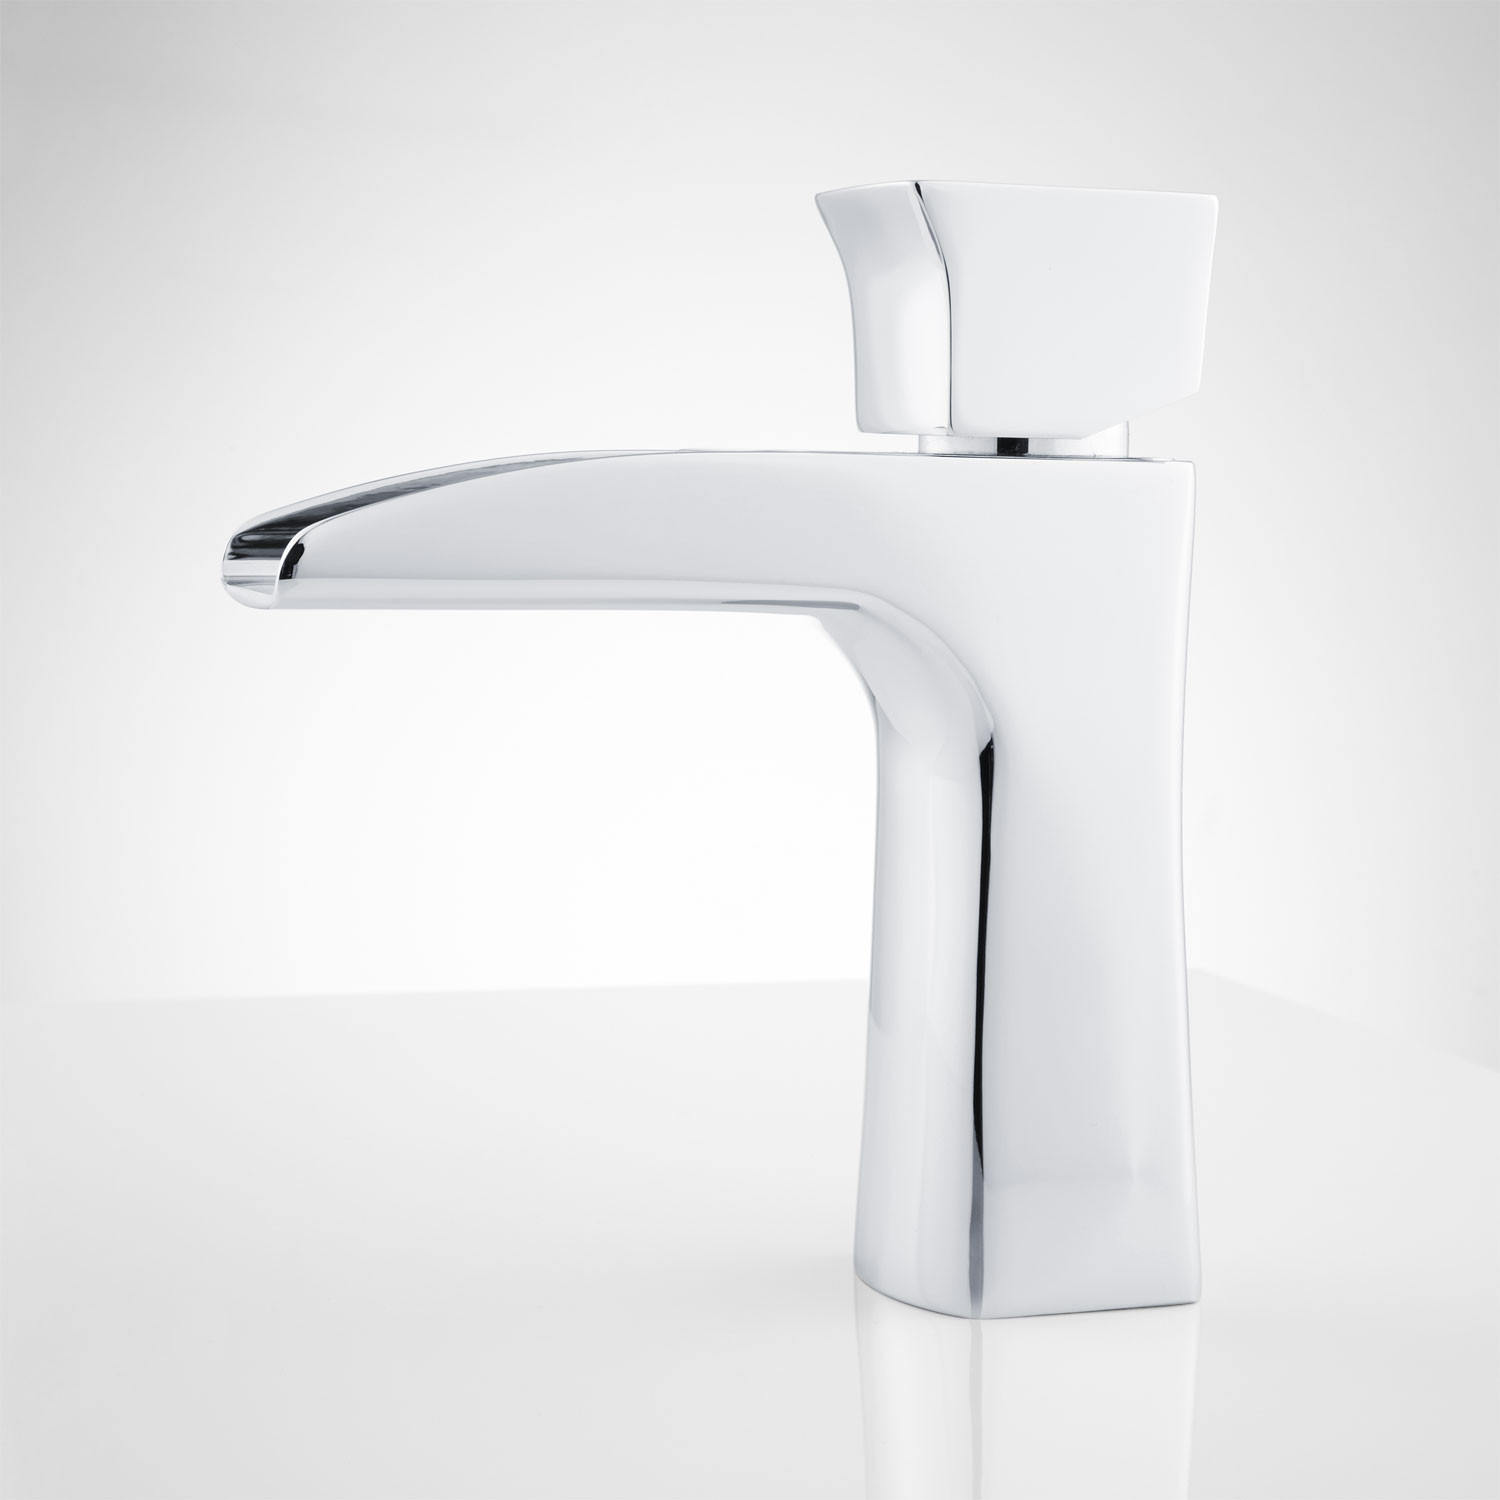 Best ideas about Waterfall Bathroom Faucet . Save or Pin Corbin Single Hole Waterfall Bathroom Faucet Bathroom Now.